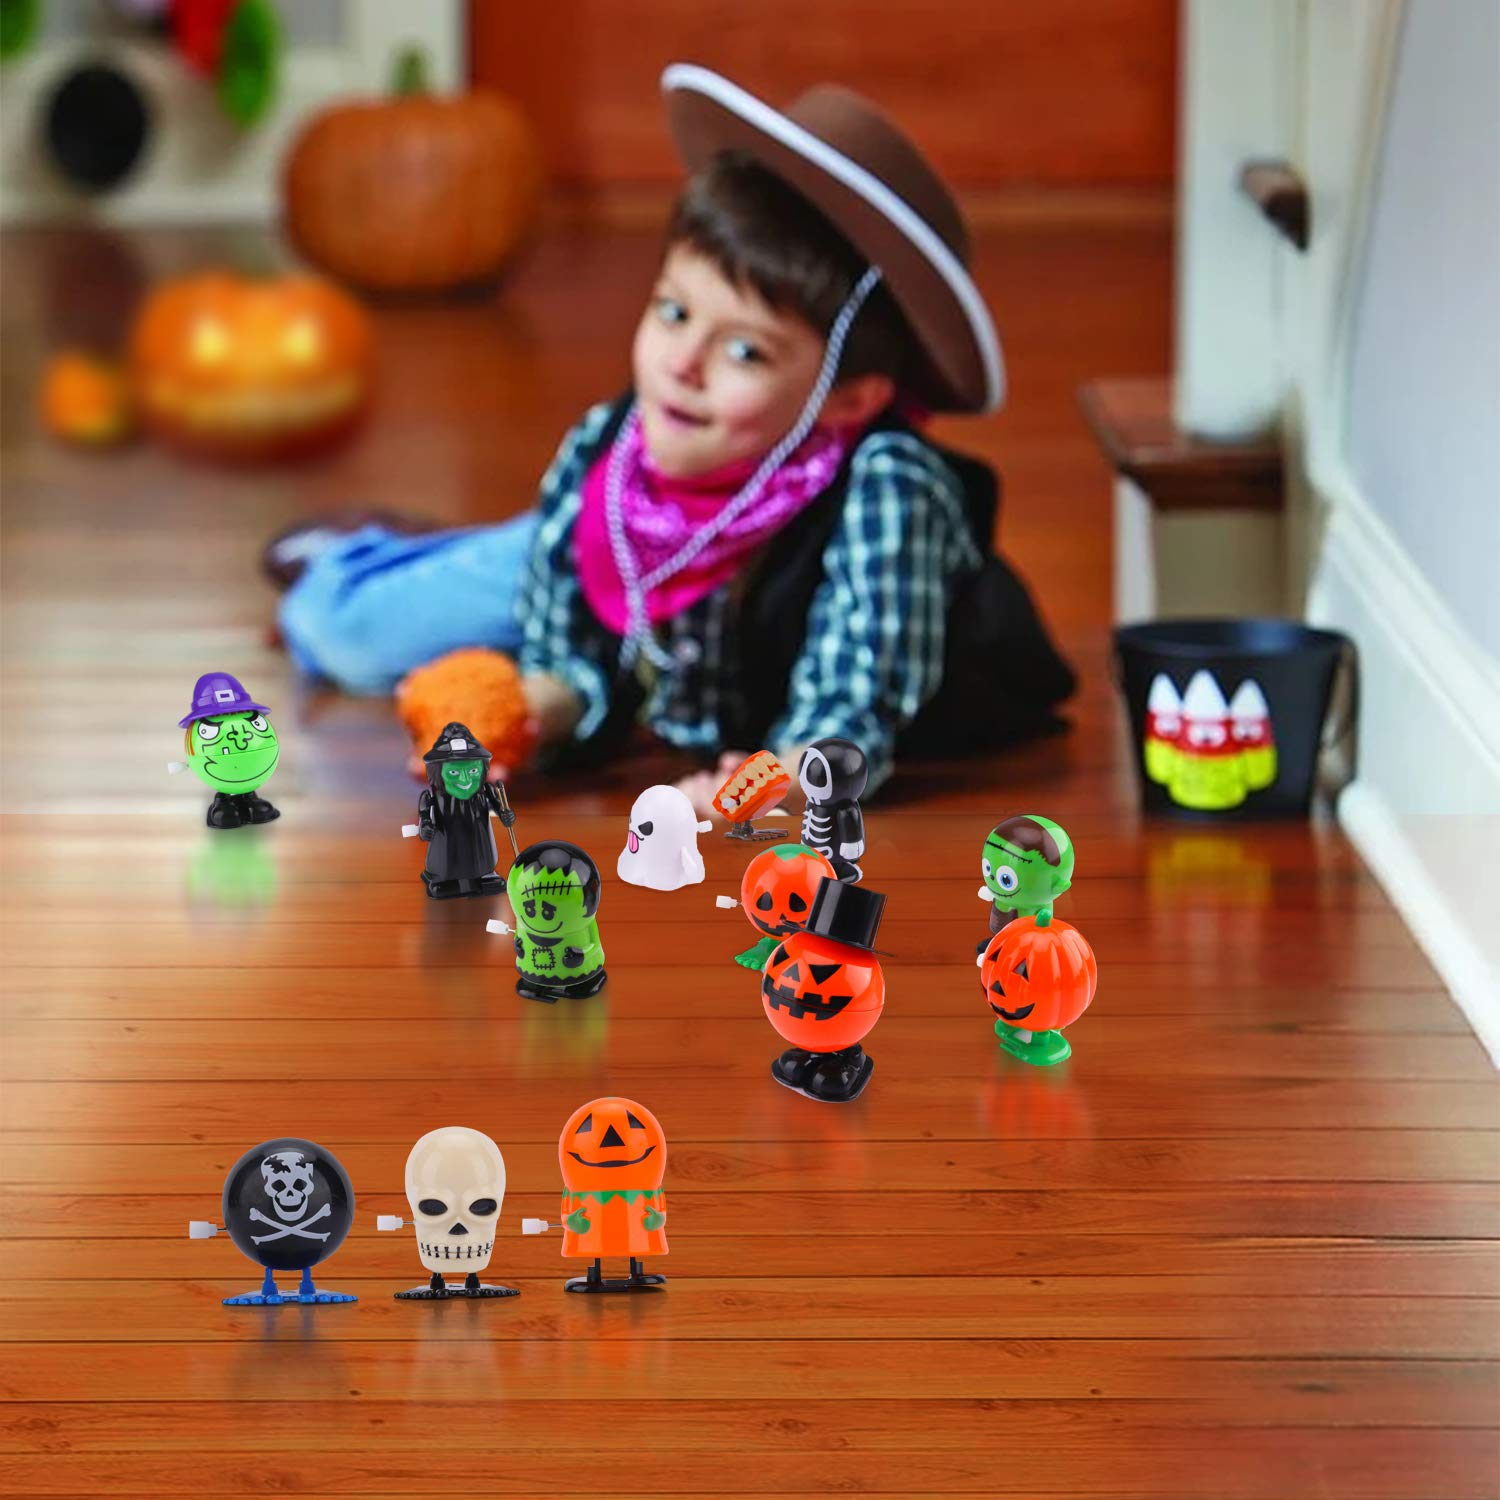 Assorted Clockwork Toys Assortment Goody Bag Filler Supply for Party Favors for Kids VIRIITA 18 Pack Halloween Wind Up Toys